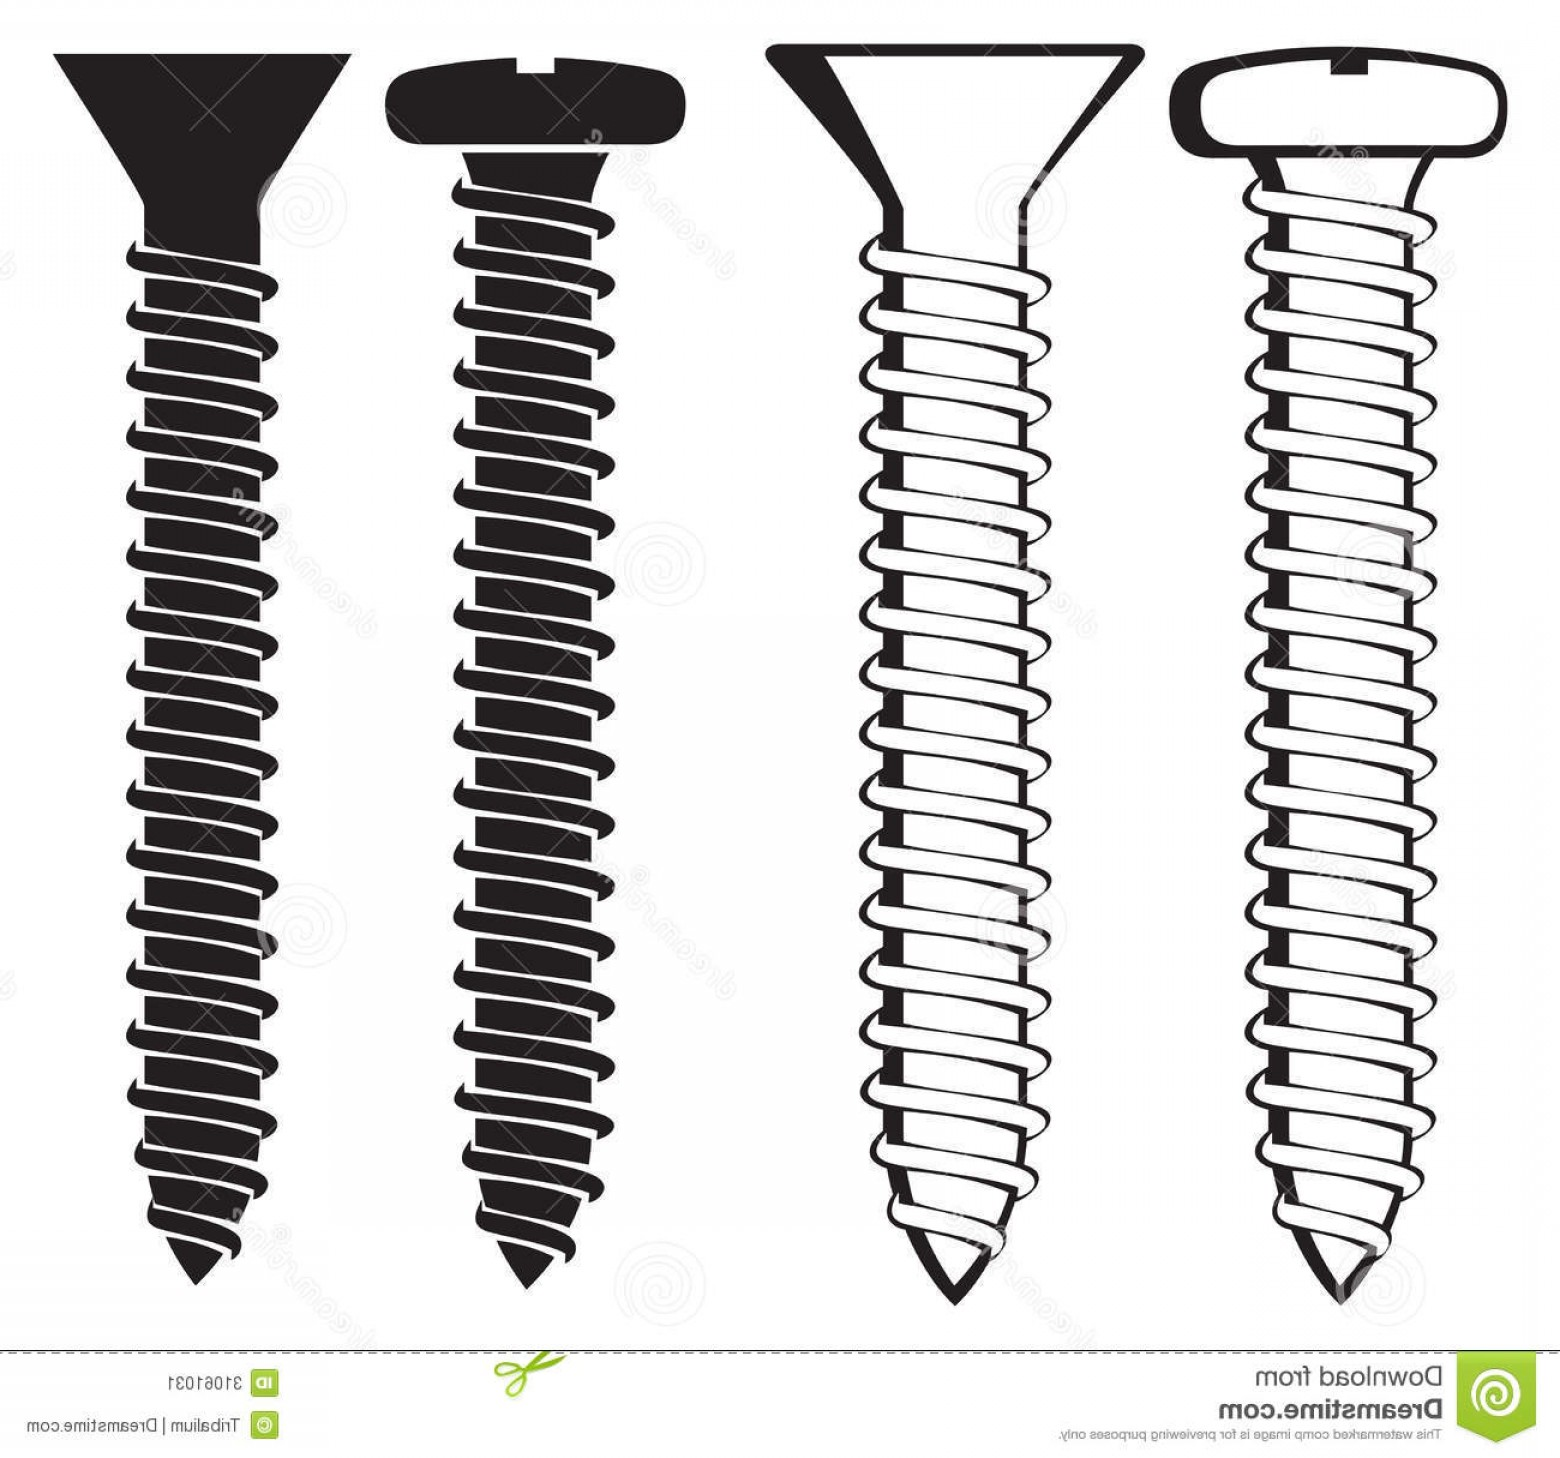 Screw Vector: Stock Illustration Various Screws Silhouettes Set Vector Dark Grey Side View Screw Silhouette Image